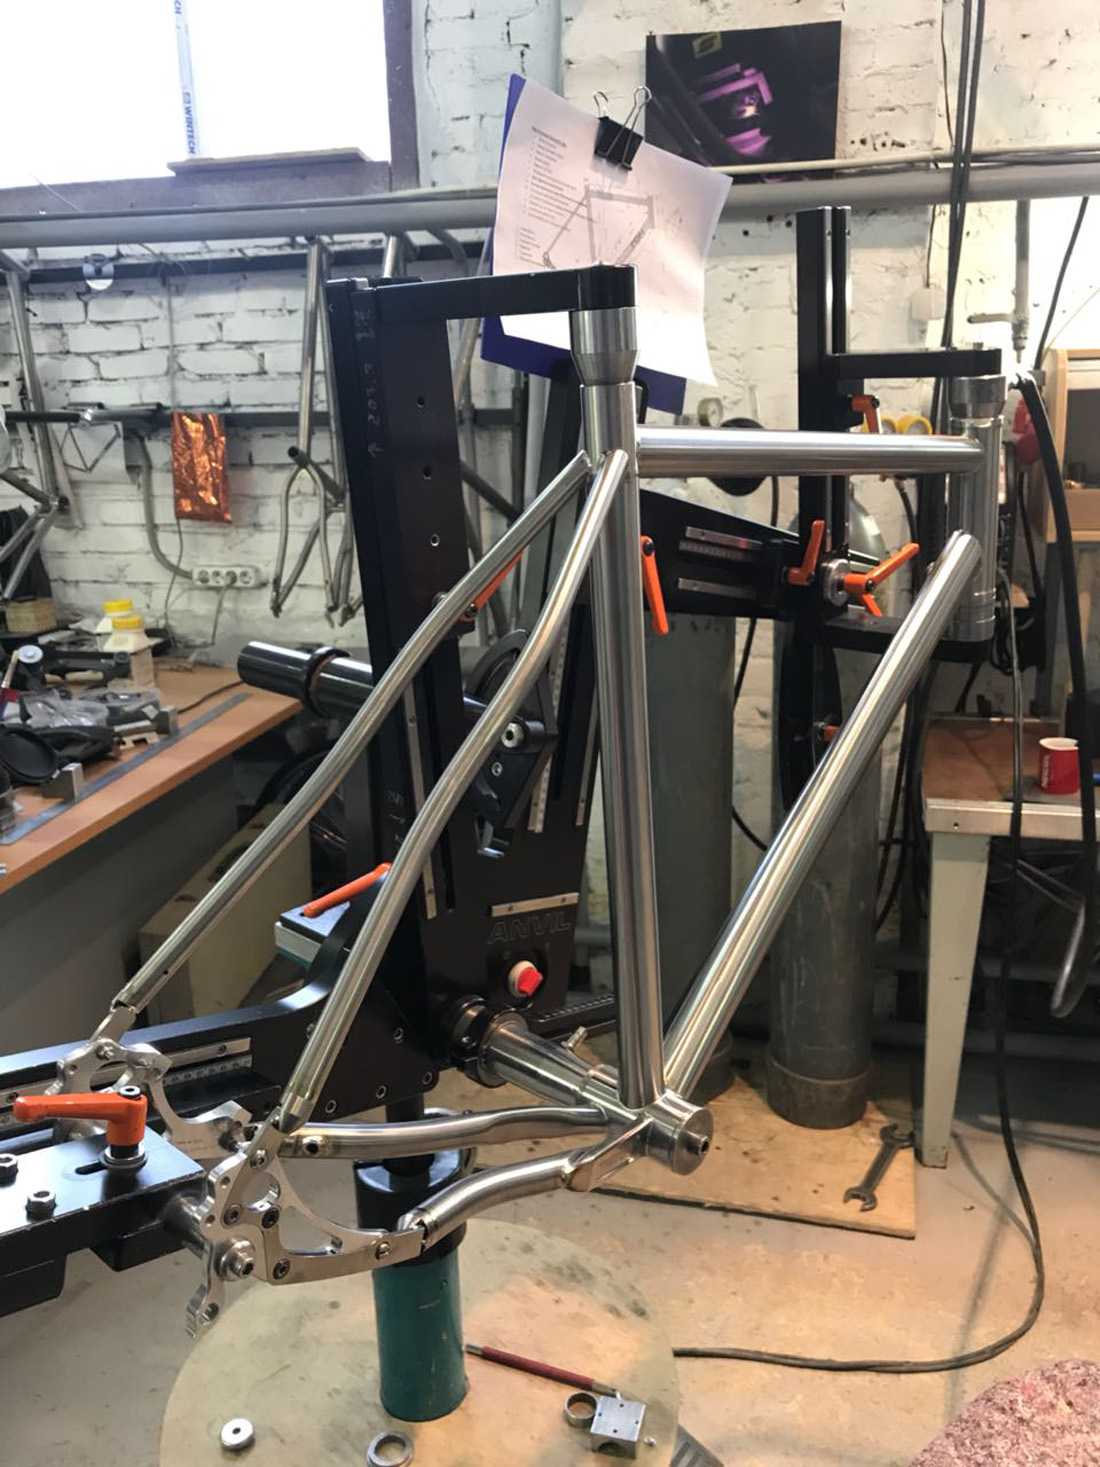 updates from Russia: Triton titanium hravel rig...